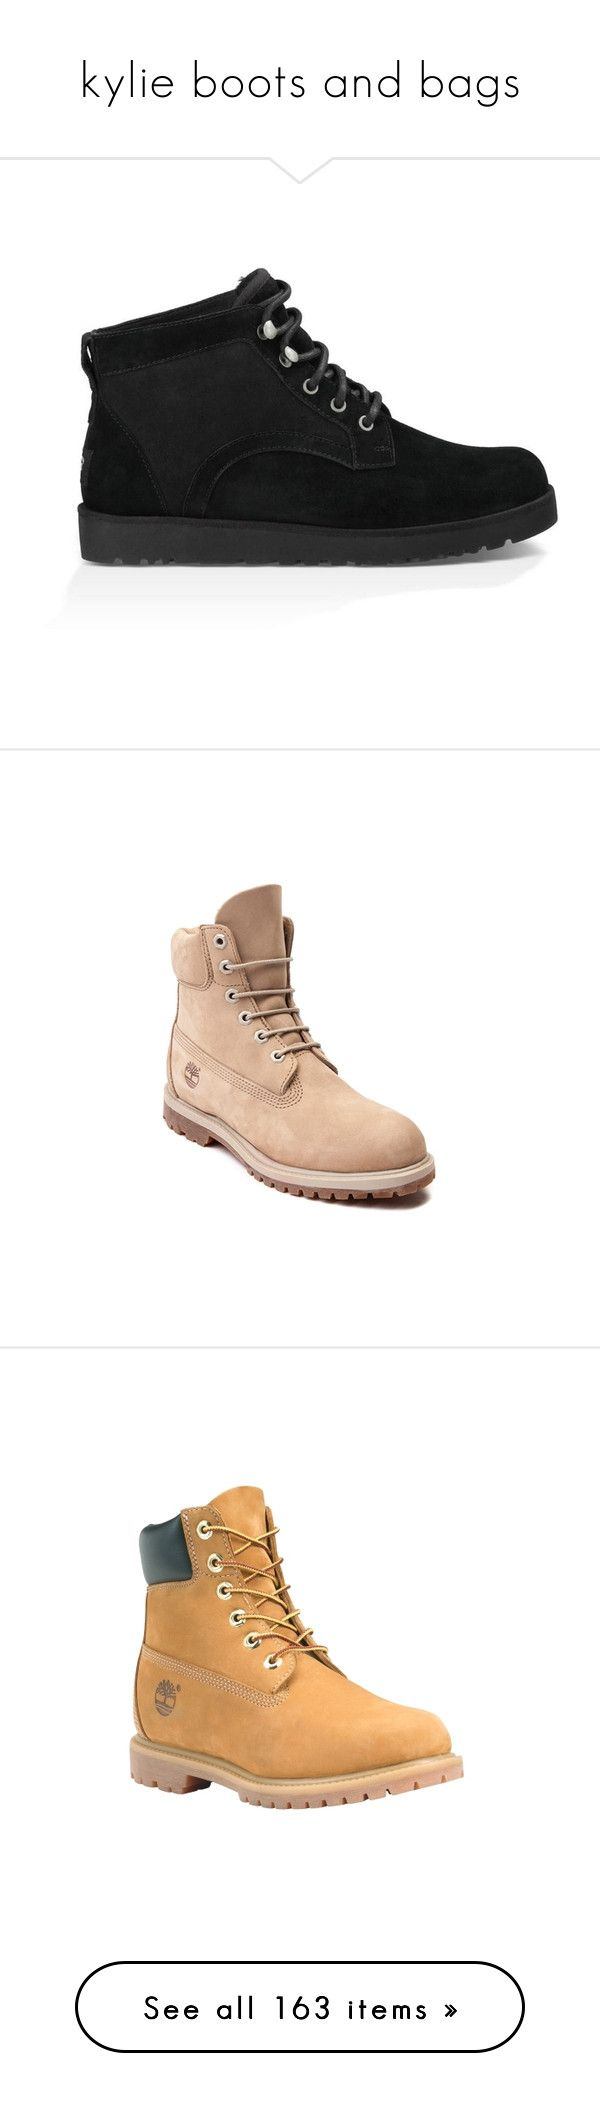 """""""kylie boots and bags"""" by marilia13 ❤ liked on Polyvore featuring shoes, boots, light weight shoes, lightweight boots, slim boots, grip shoes, traction shoes, timberland footwear, timberland shoes and timberland boots"""